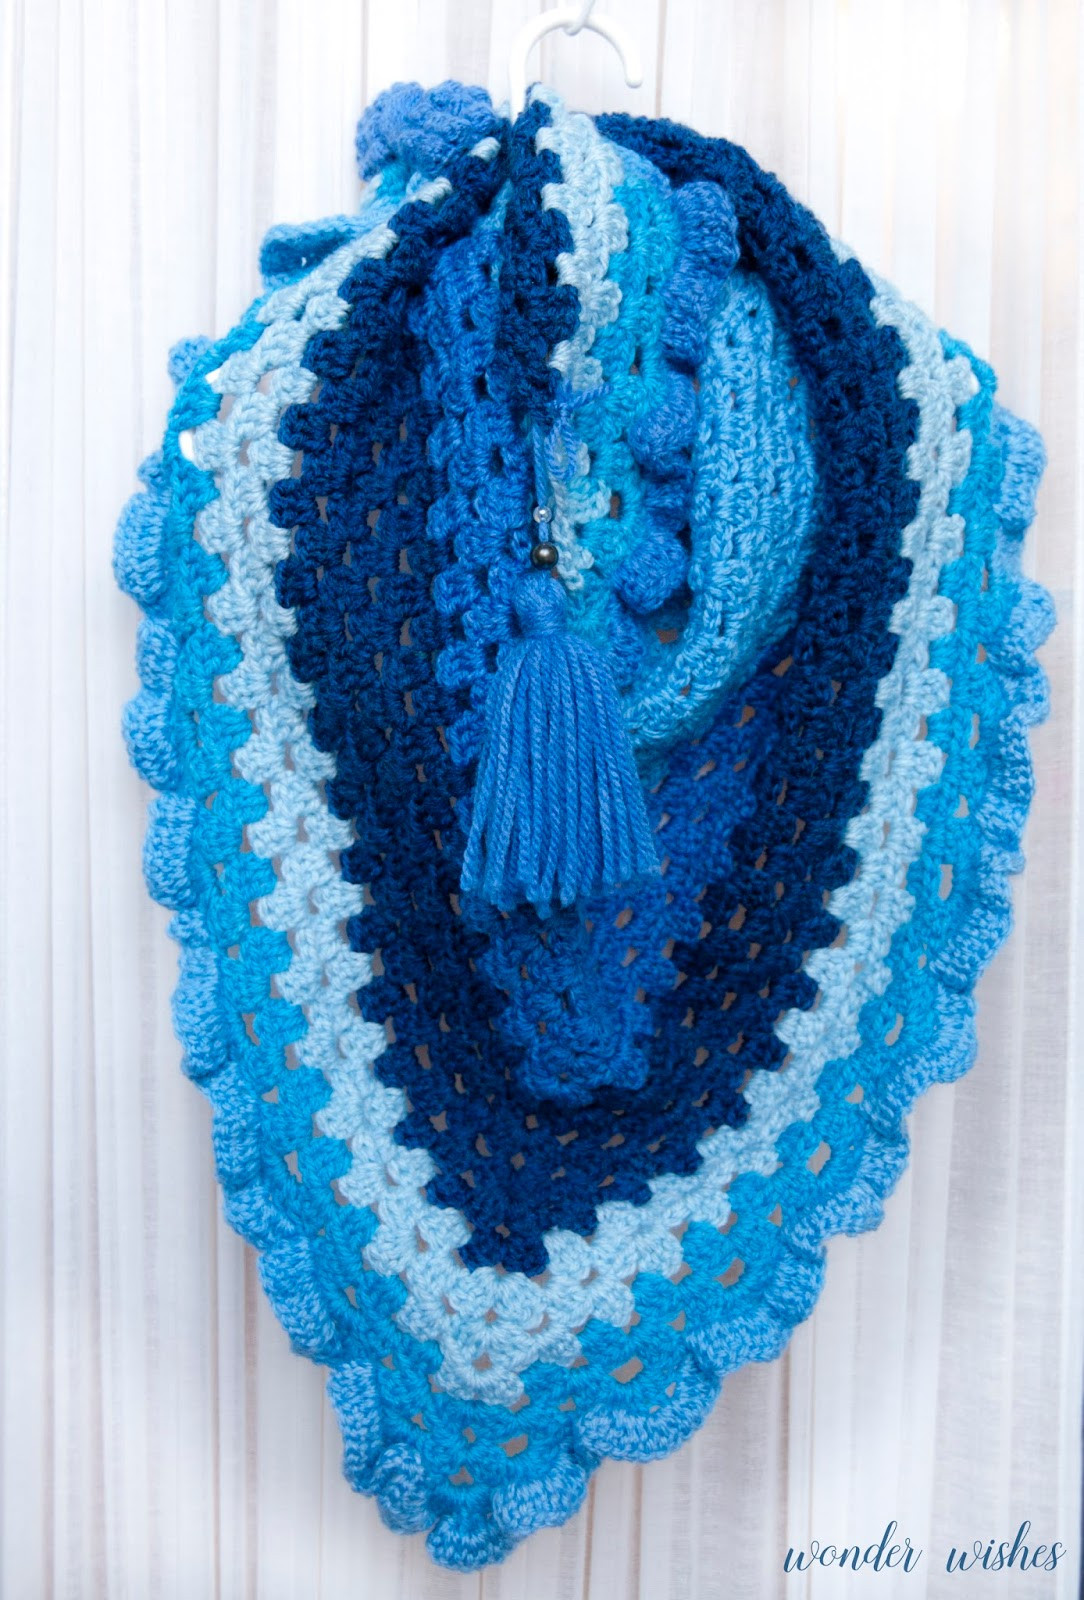 Awesome Wonder Wishes Crocheting Scarves with Caron Cakes Caron Cakes Yarn Patterns Of Perfect 46 Pictures Caron Cakes Yarn Patterns